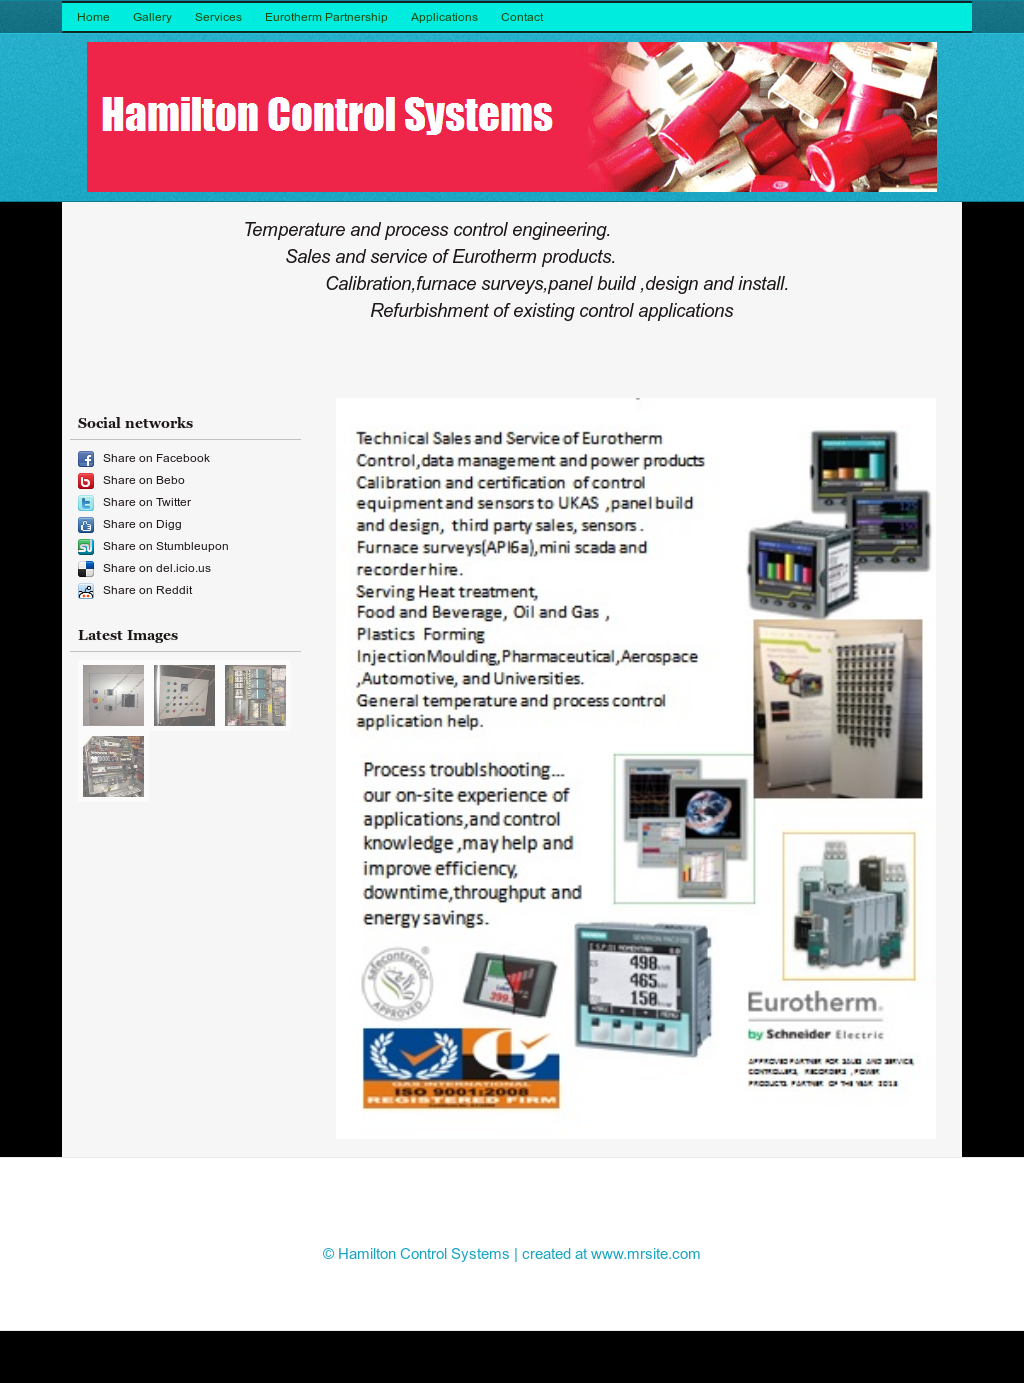 Hamilton Control Systems Competitors, Revenue and Employees - Owler